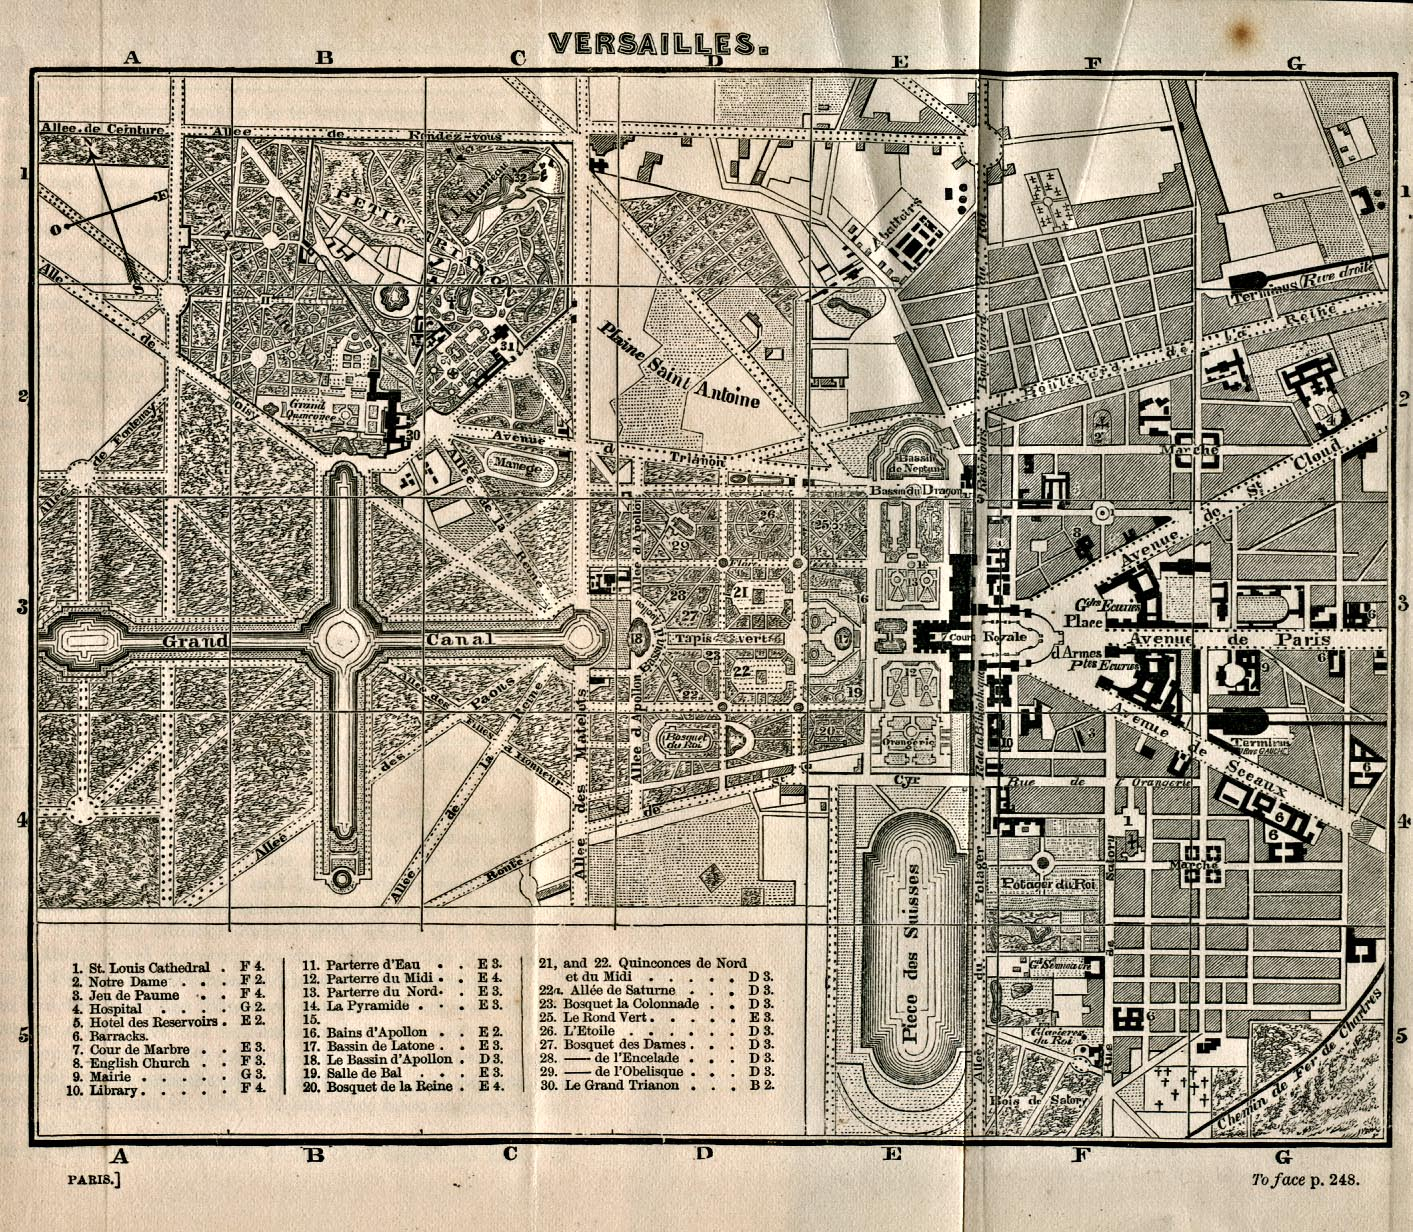 Versailles Map Of France.Maps Of Versailles Map France 1866 Mapa Owje Com